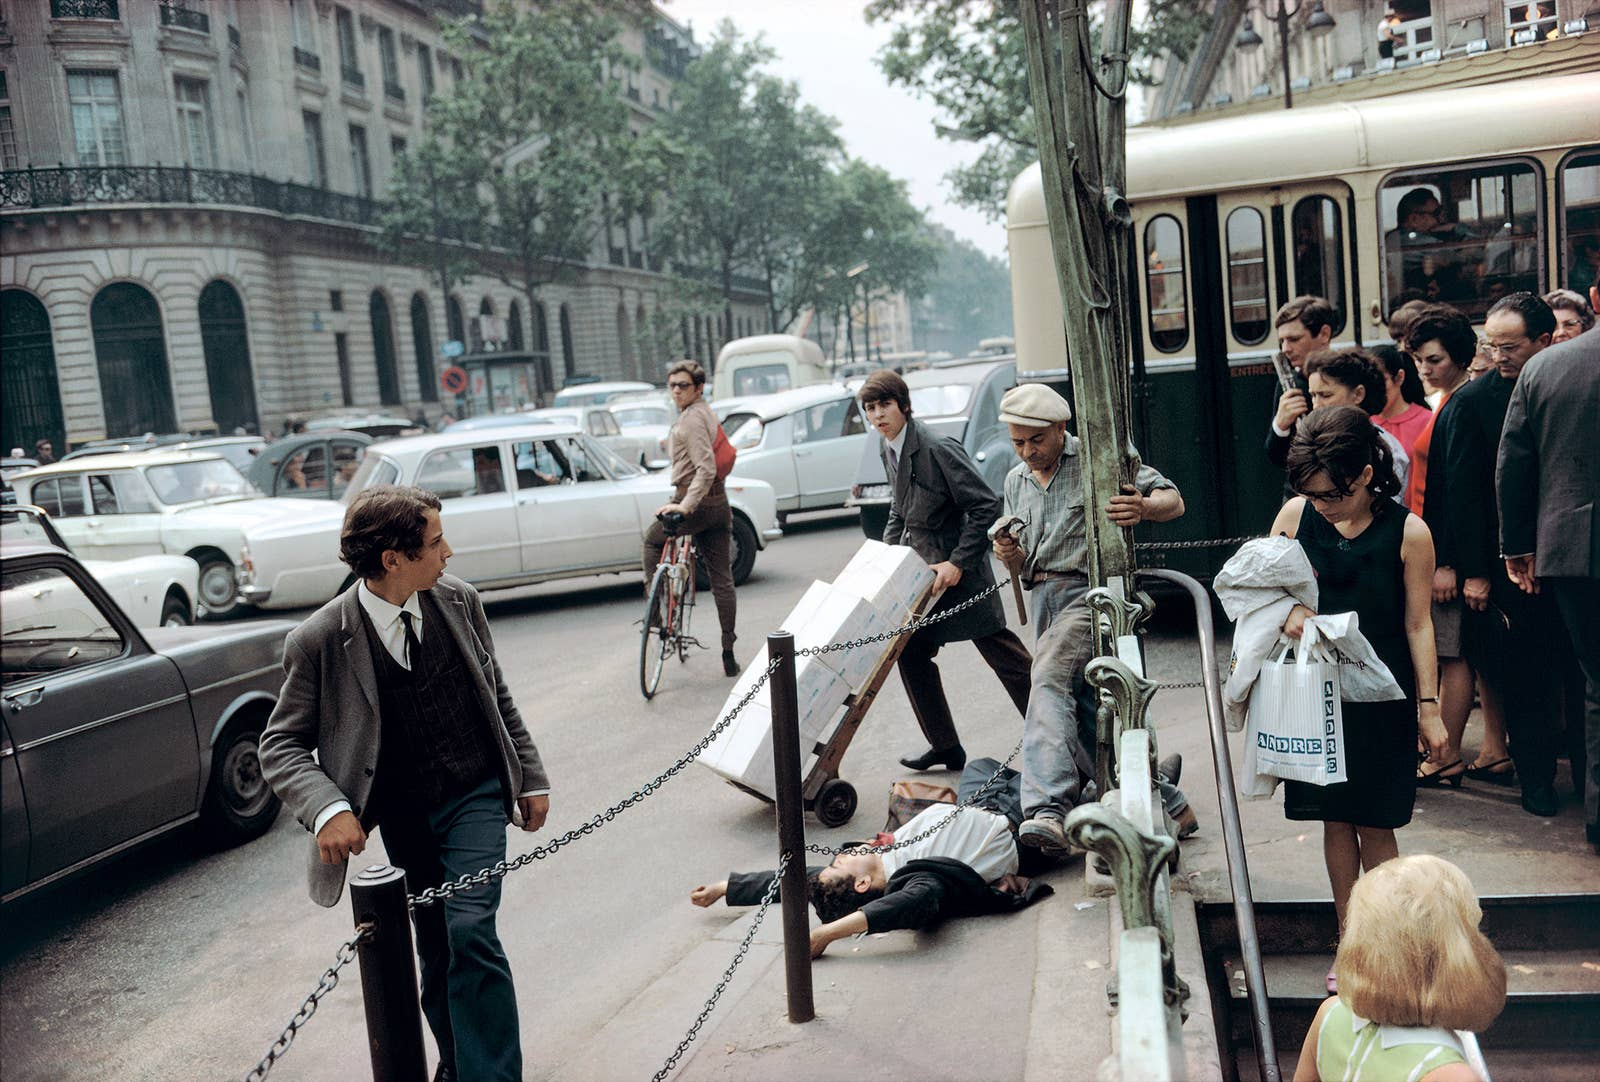 A man lies on the ground in the middle of a crowded city street while a cyclist and pedestrians look at him